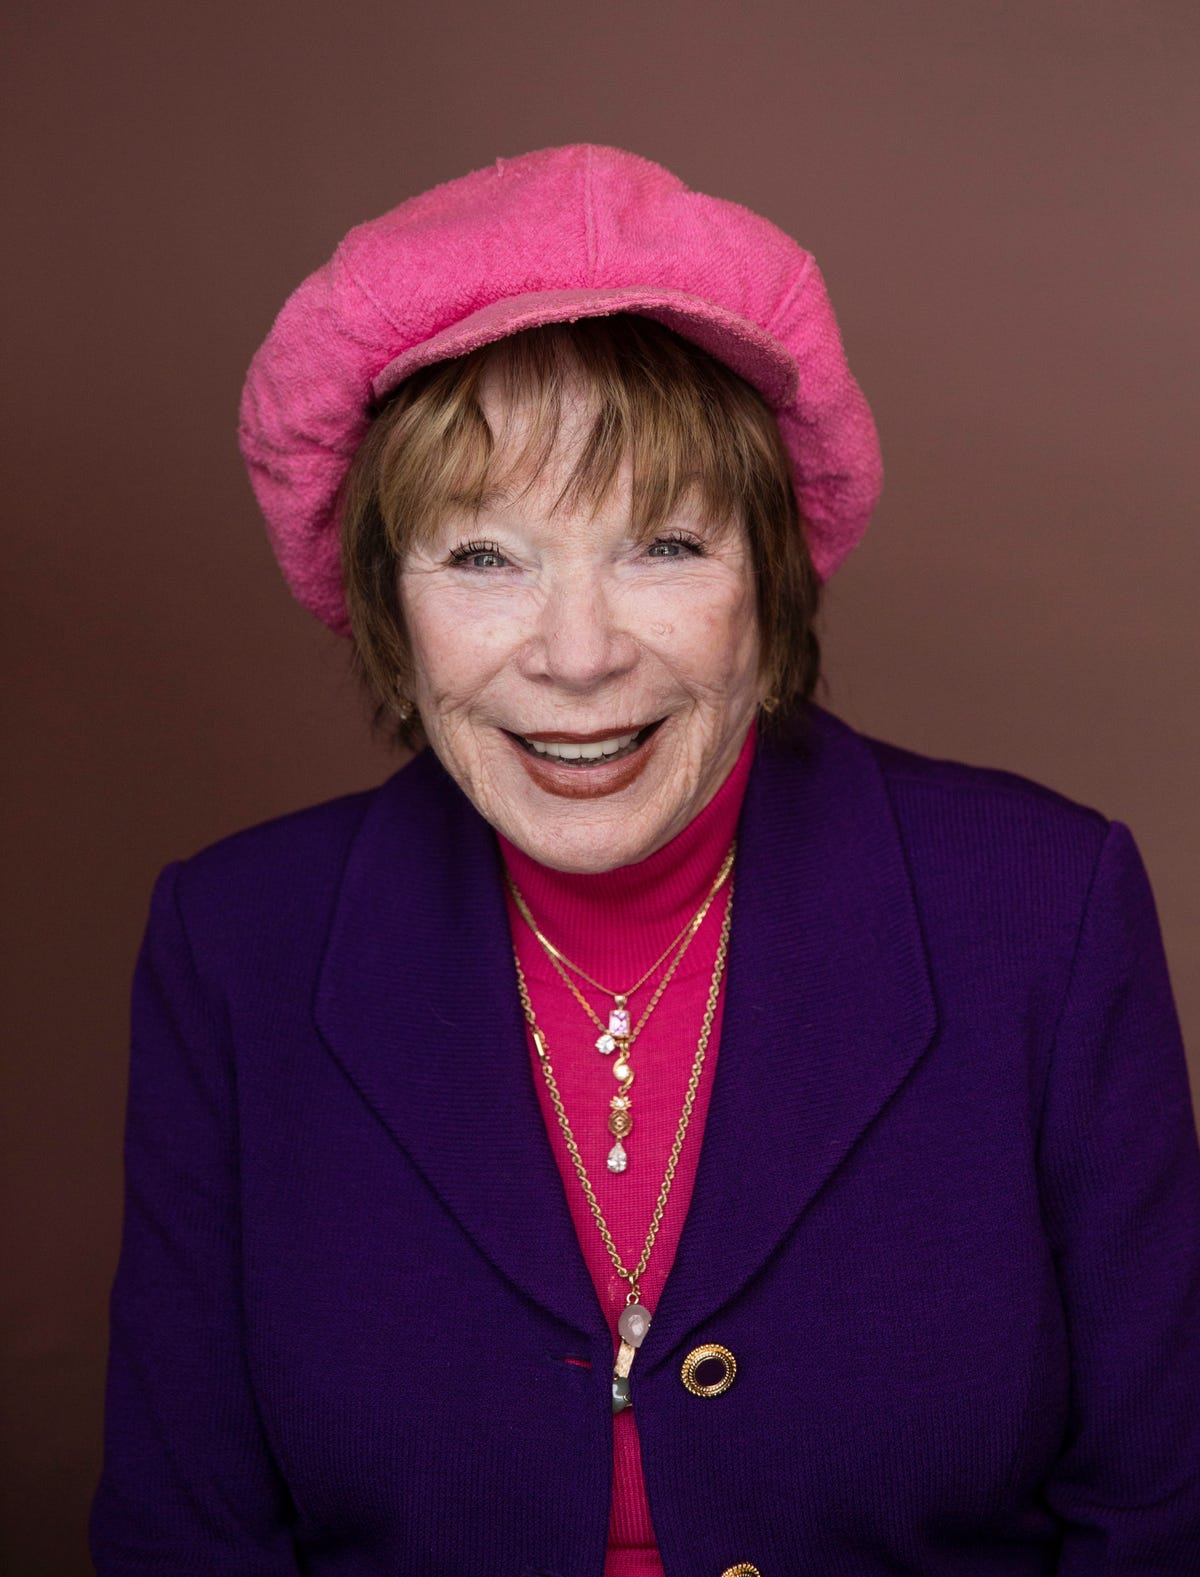 Shirley MacLaine on Oscars, remakes and 'the land of